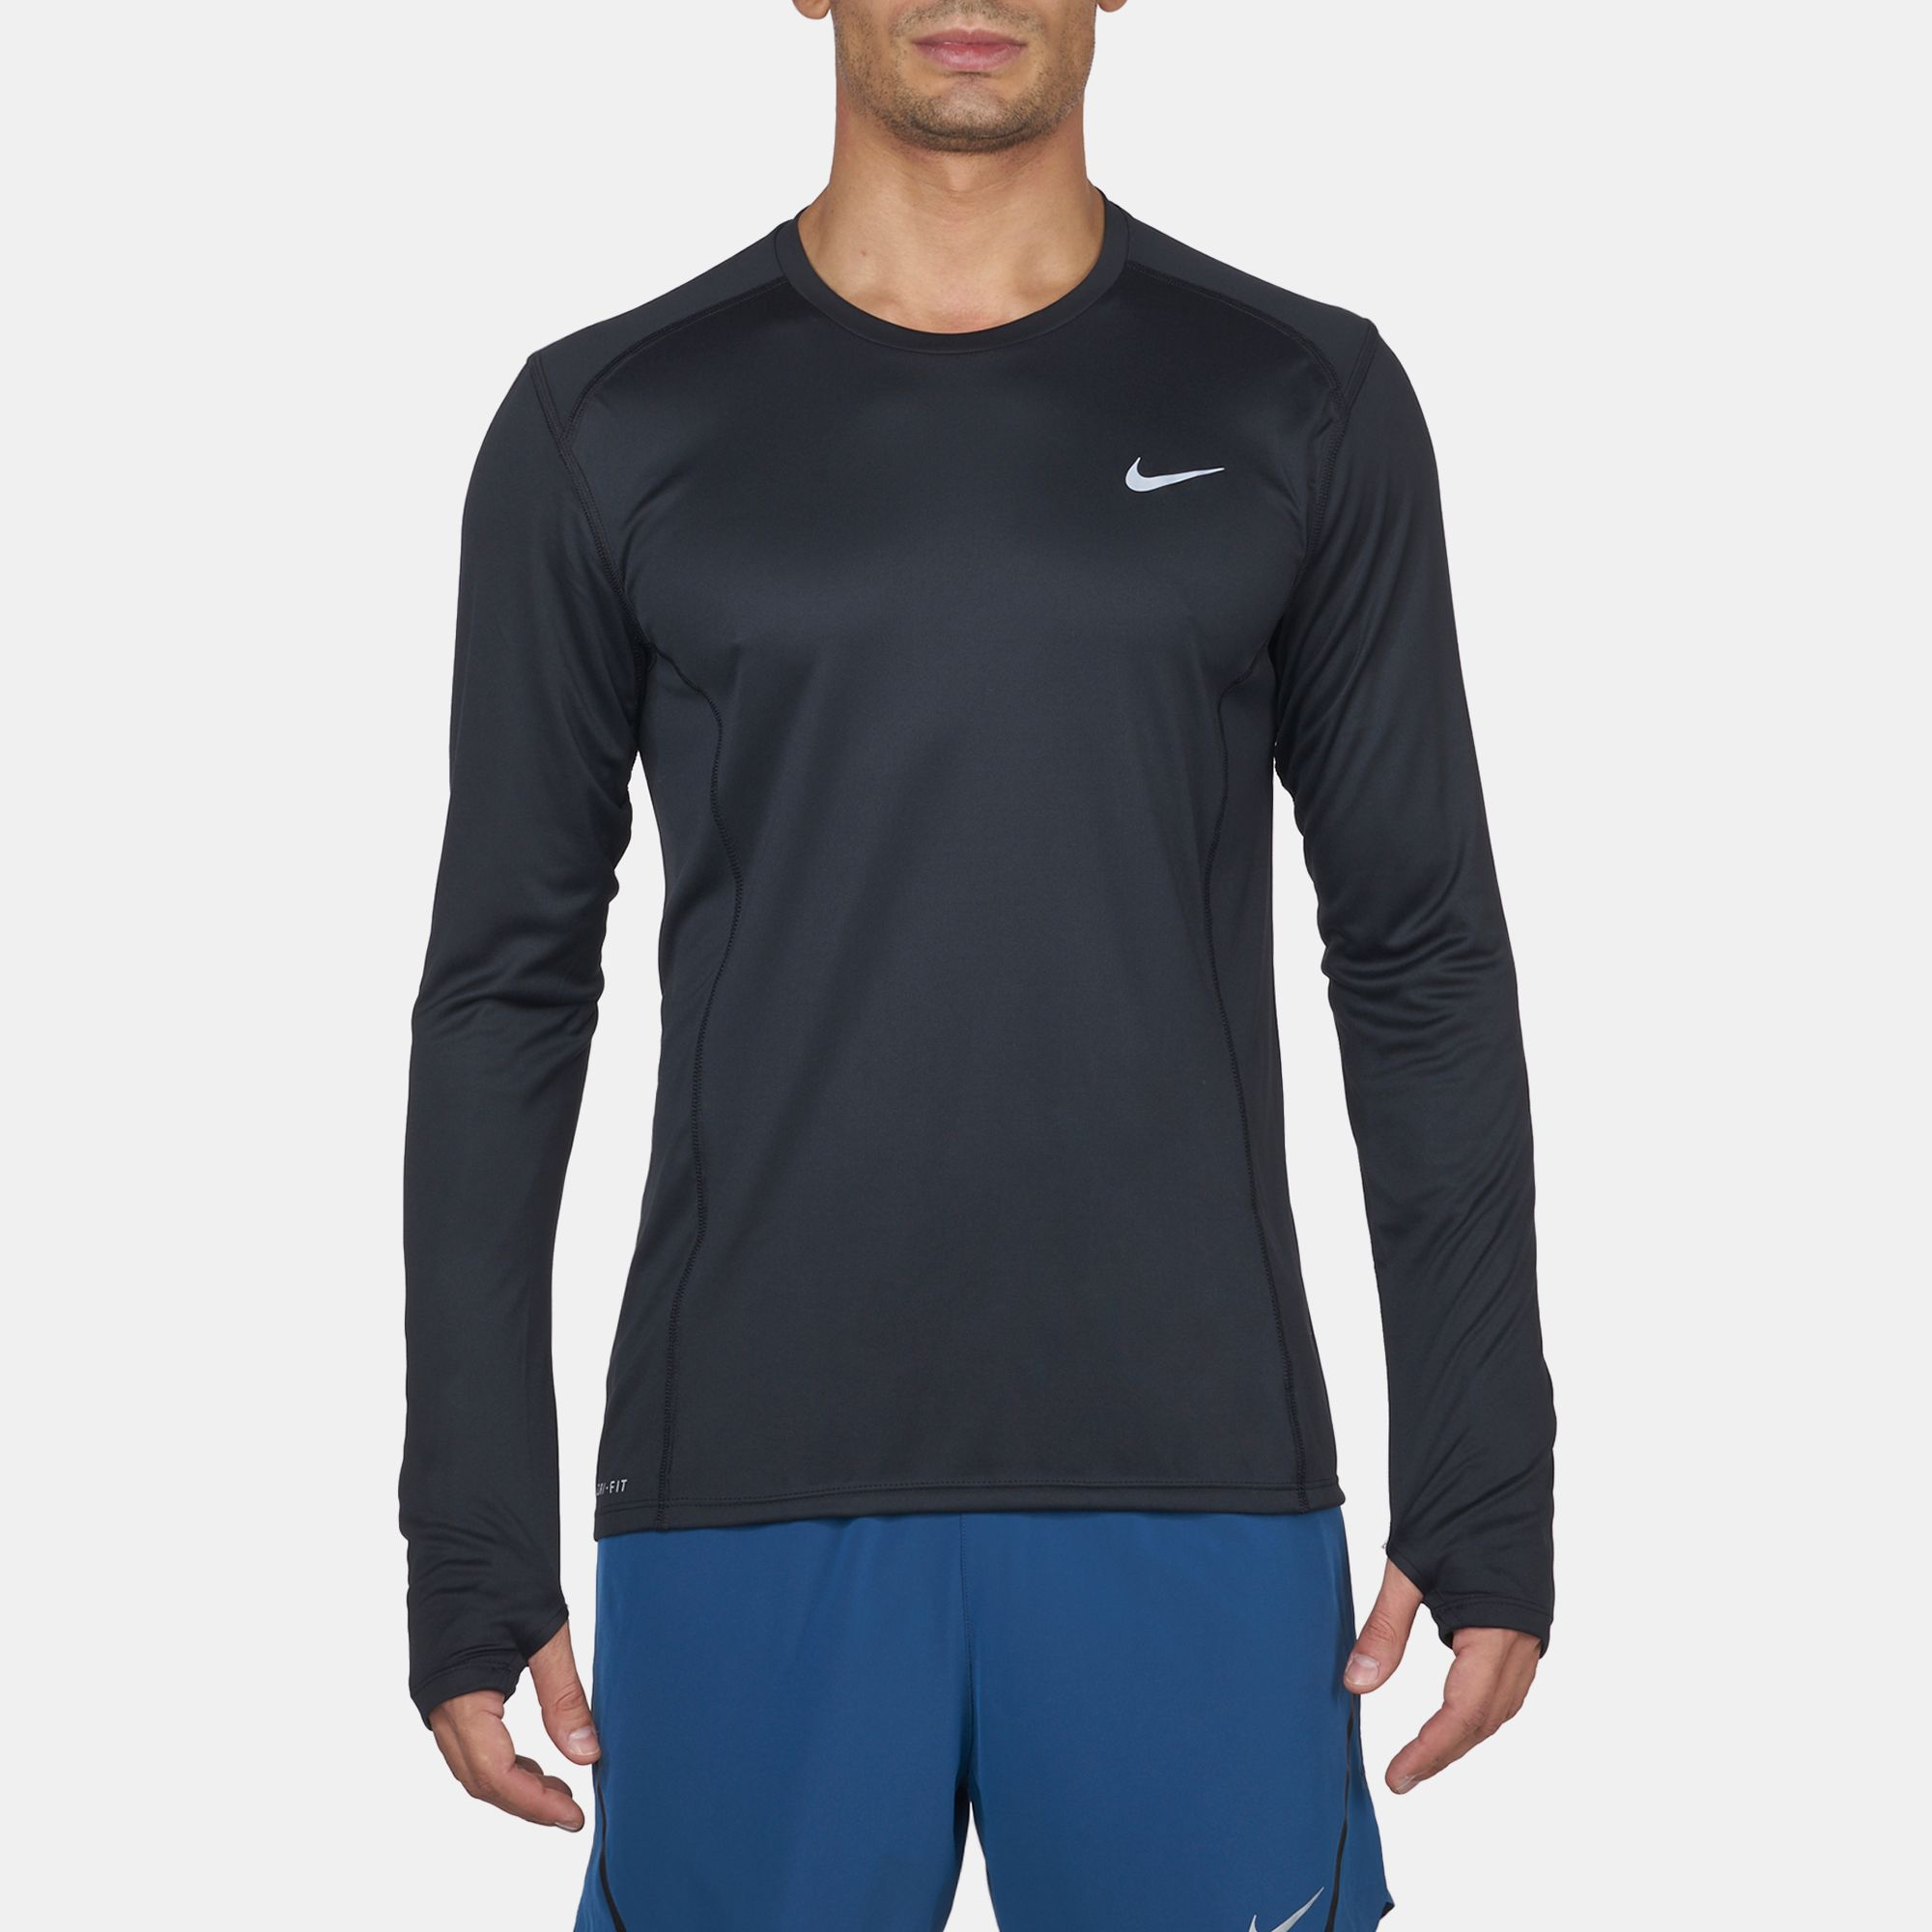 8b2ef5d2a41 Nike Miler Long Sleeve T Shirt Mens - Cotswold Hire